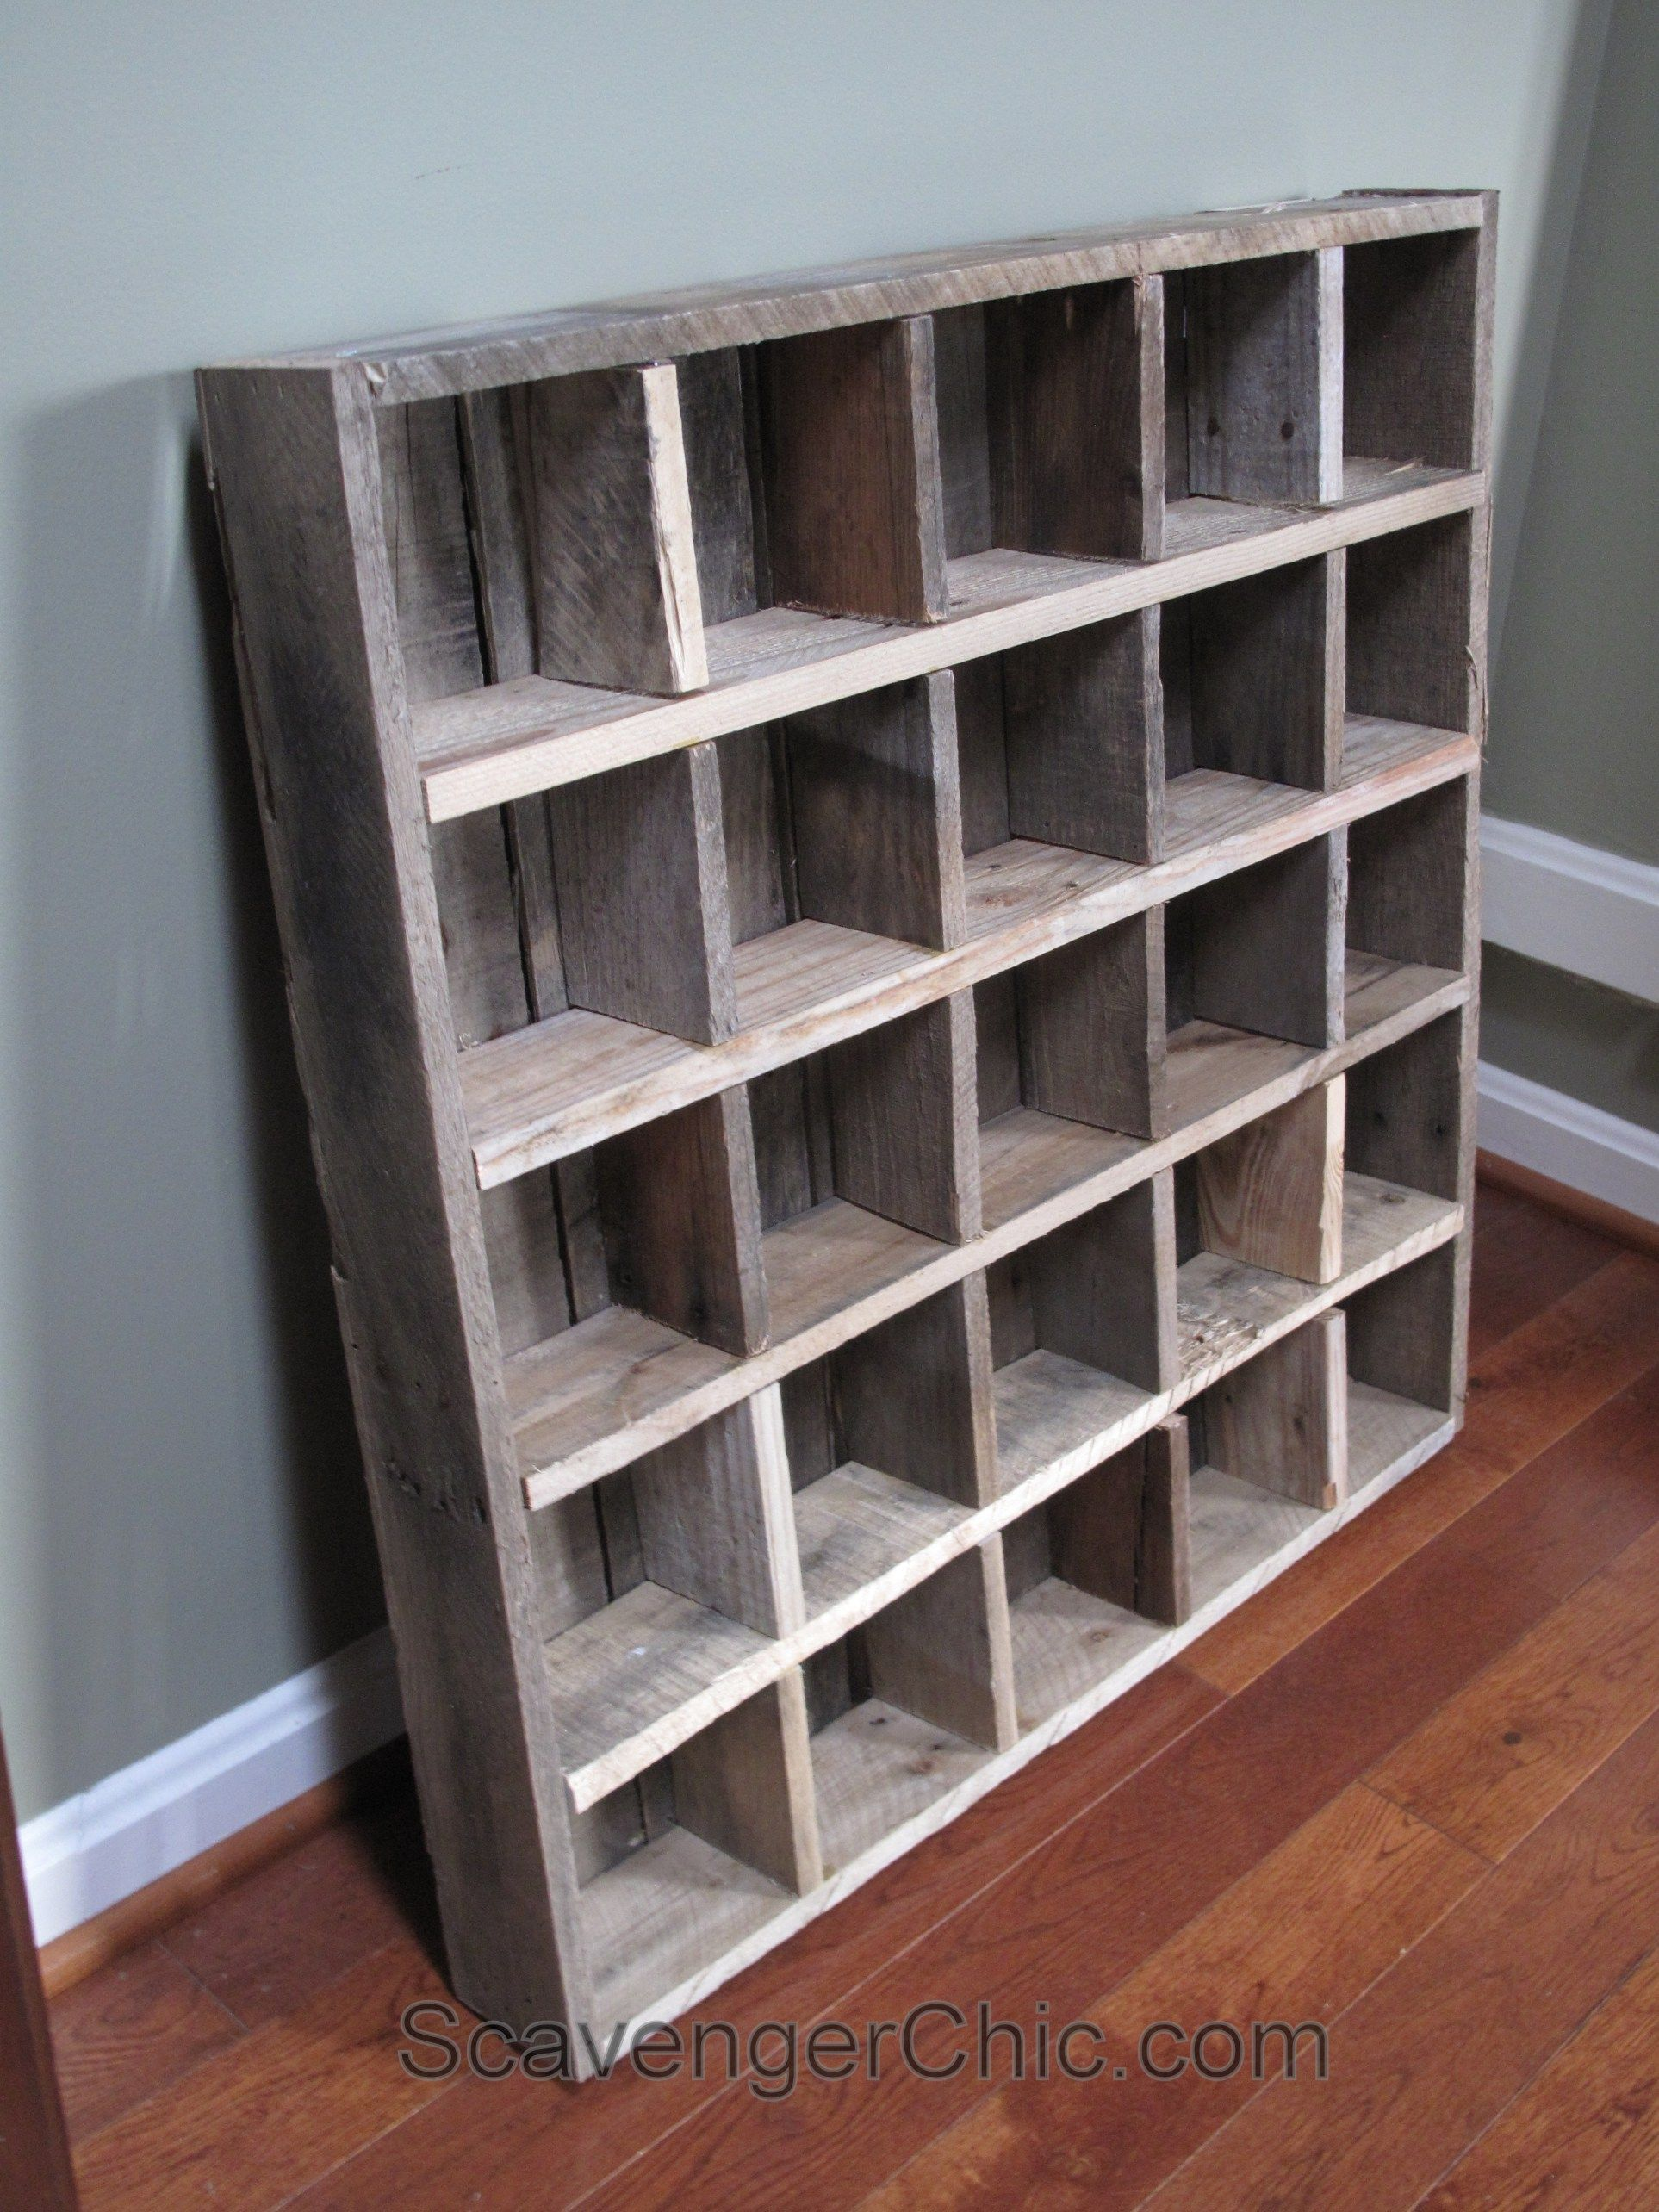 pallet pin ideas pinterest shelf wood diy cubby shelves organizer studio